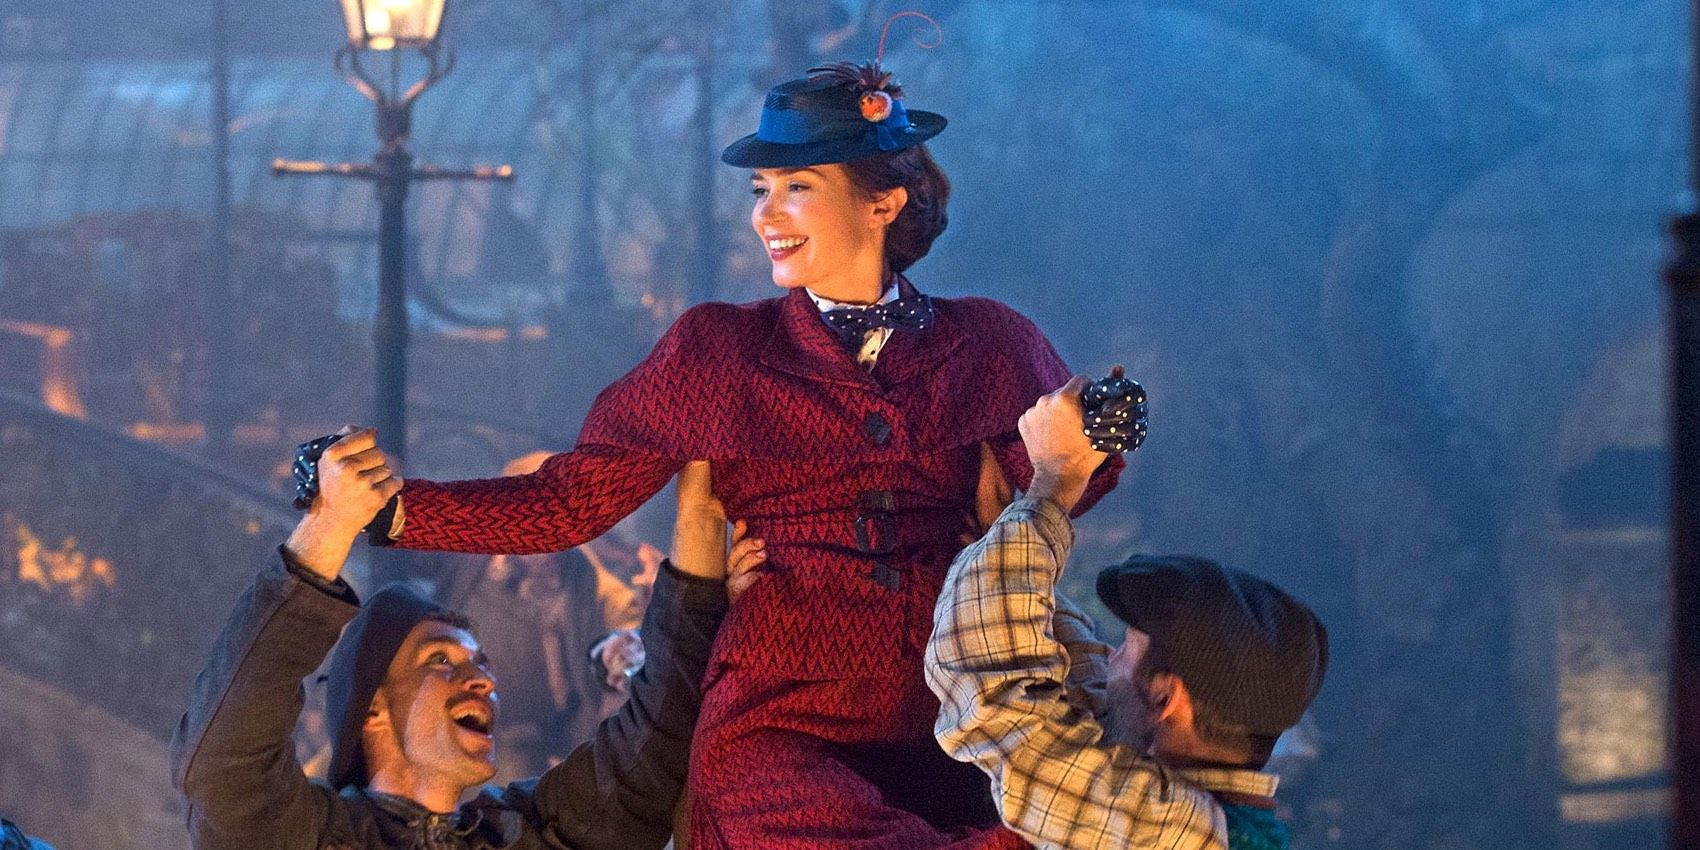 Discussion on this topic: Photos of Emily Blunt as Mary Poppins , photos-of-emily-blunt-as-mary-poppins/